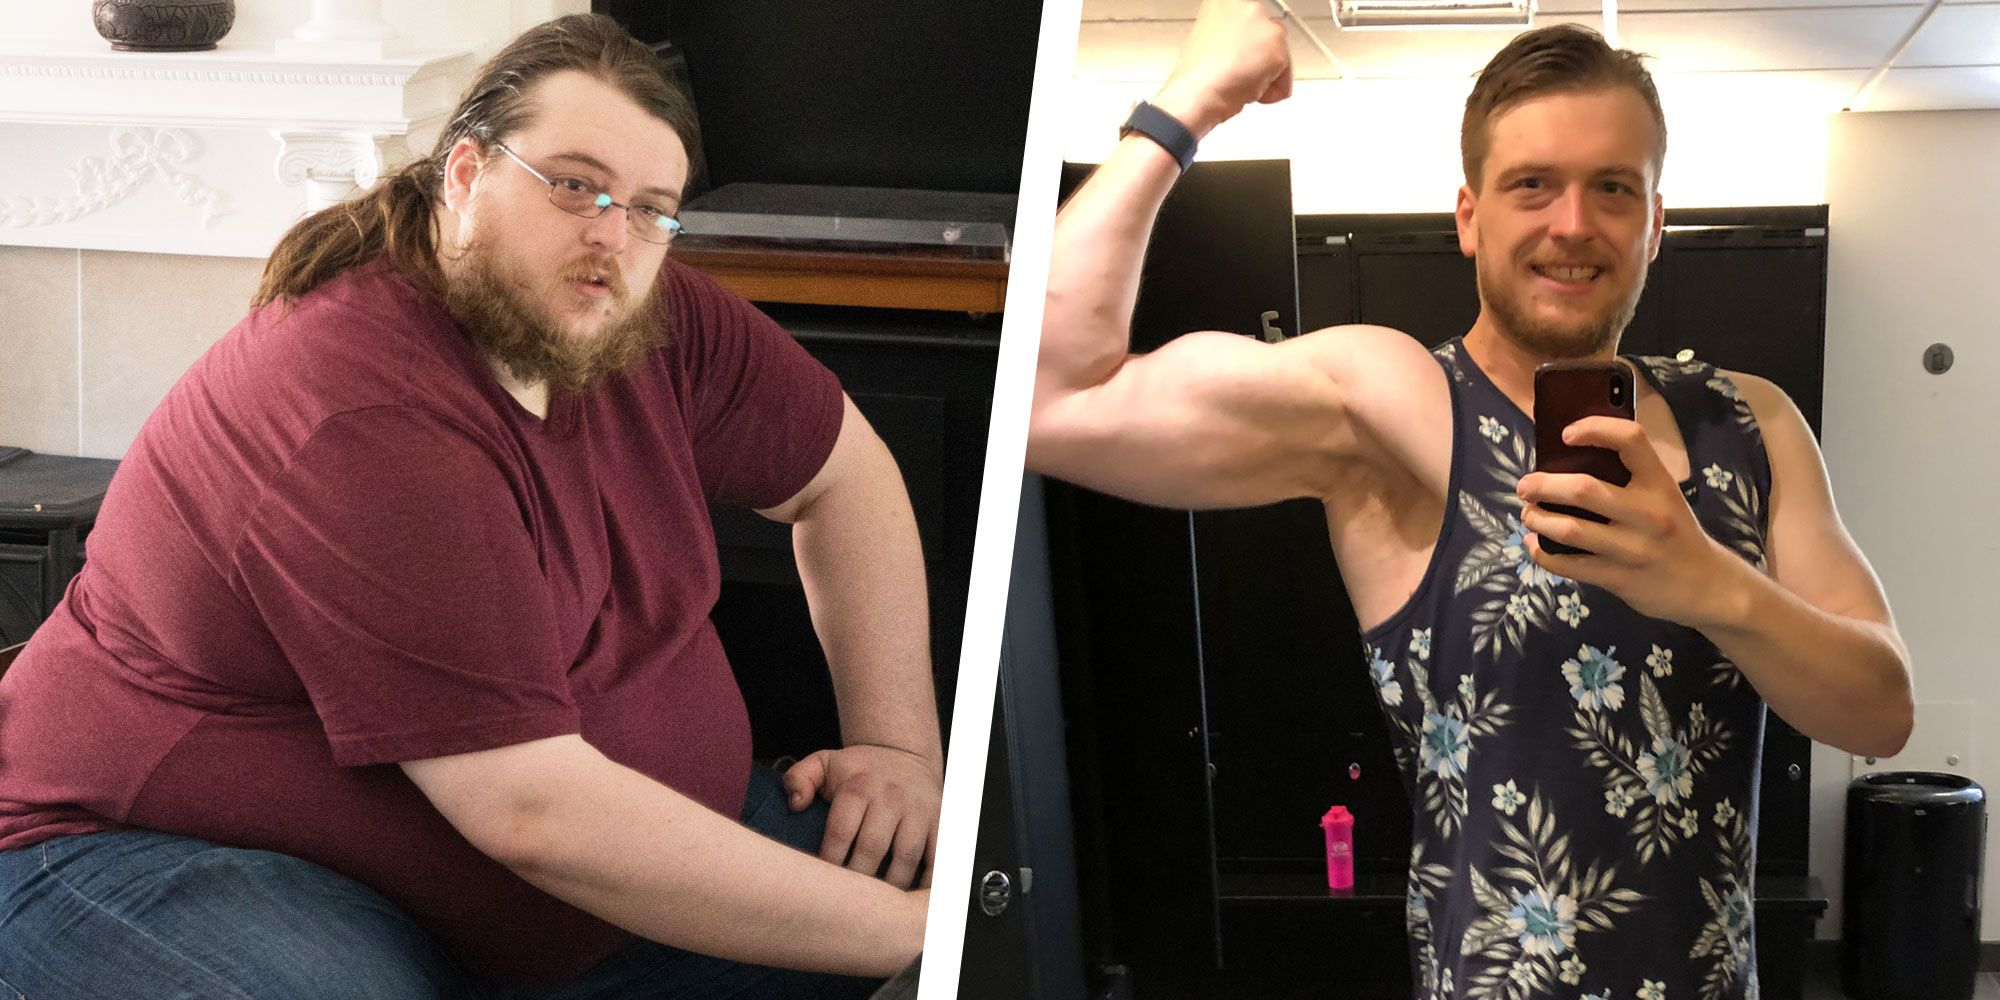 Three Major Changes Helped This Guy Lose 155 Pounds and Get Jacked